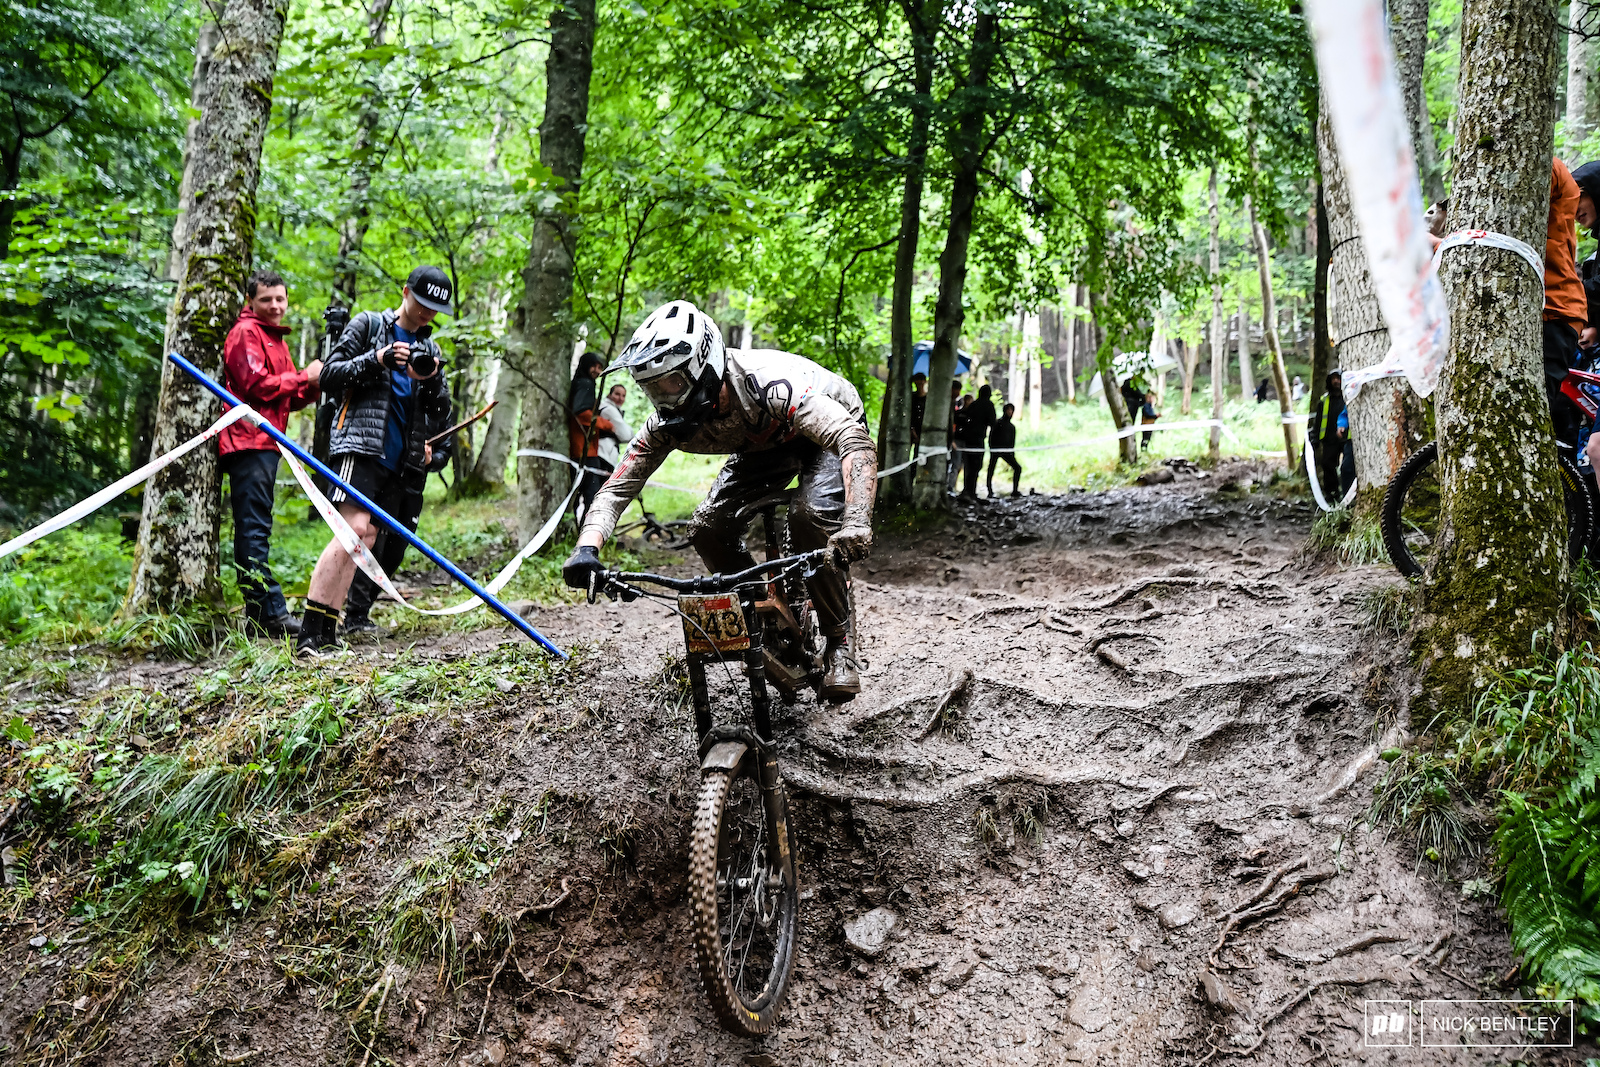 Calum Ross making his way through the mud and roots towards the last road crossing on the Innerleithen track.